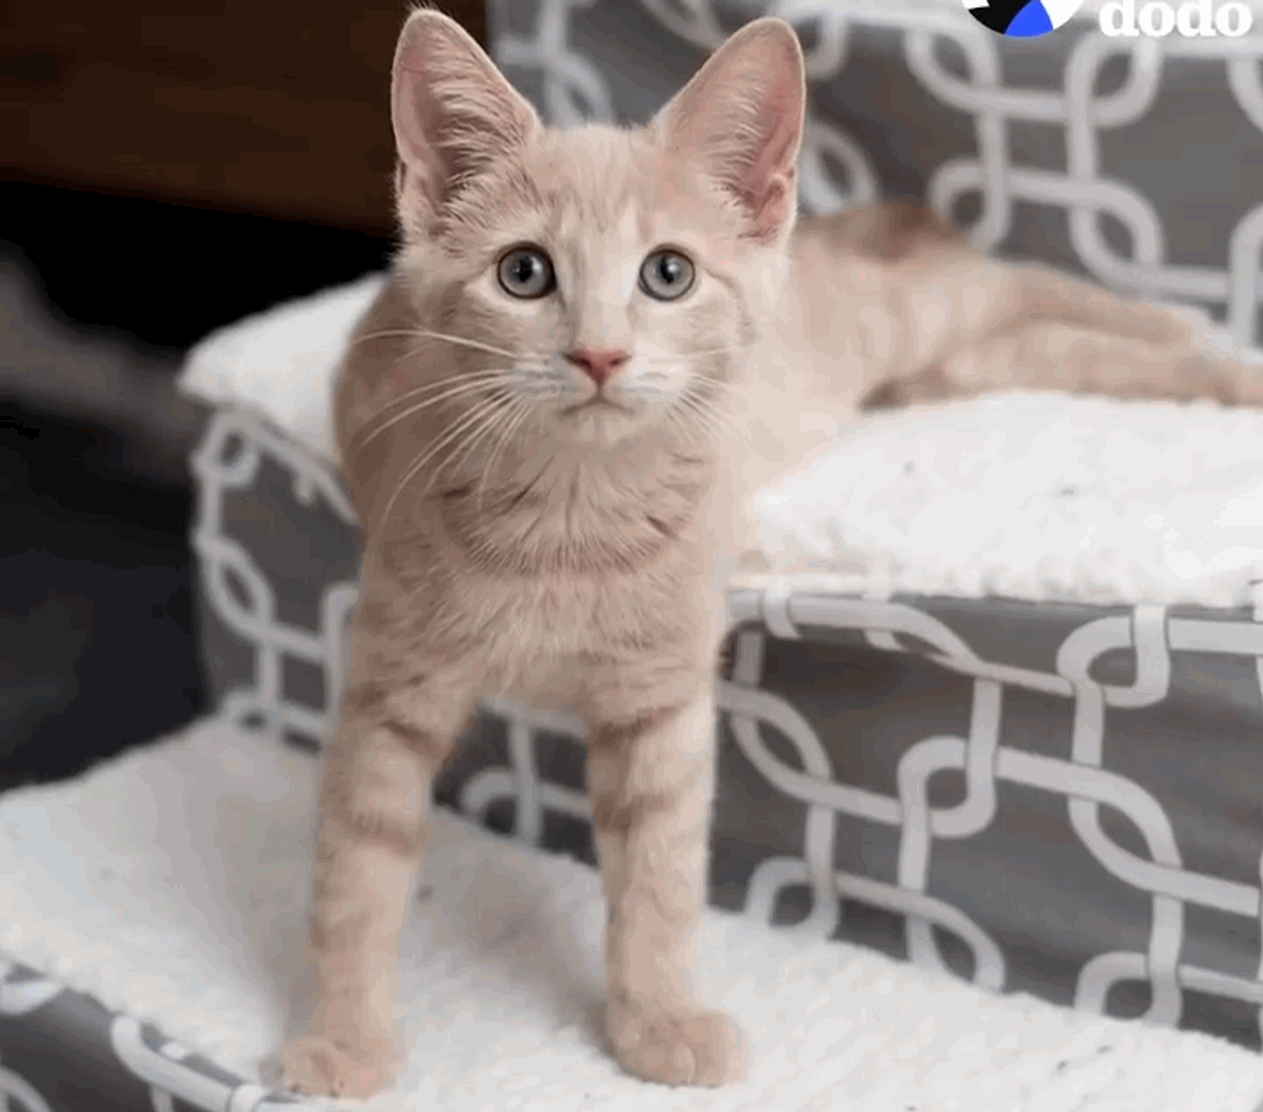 The inspiring story of Chloe, the paralyzed kitten